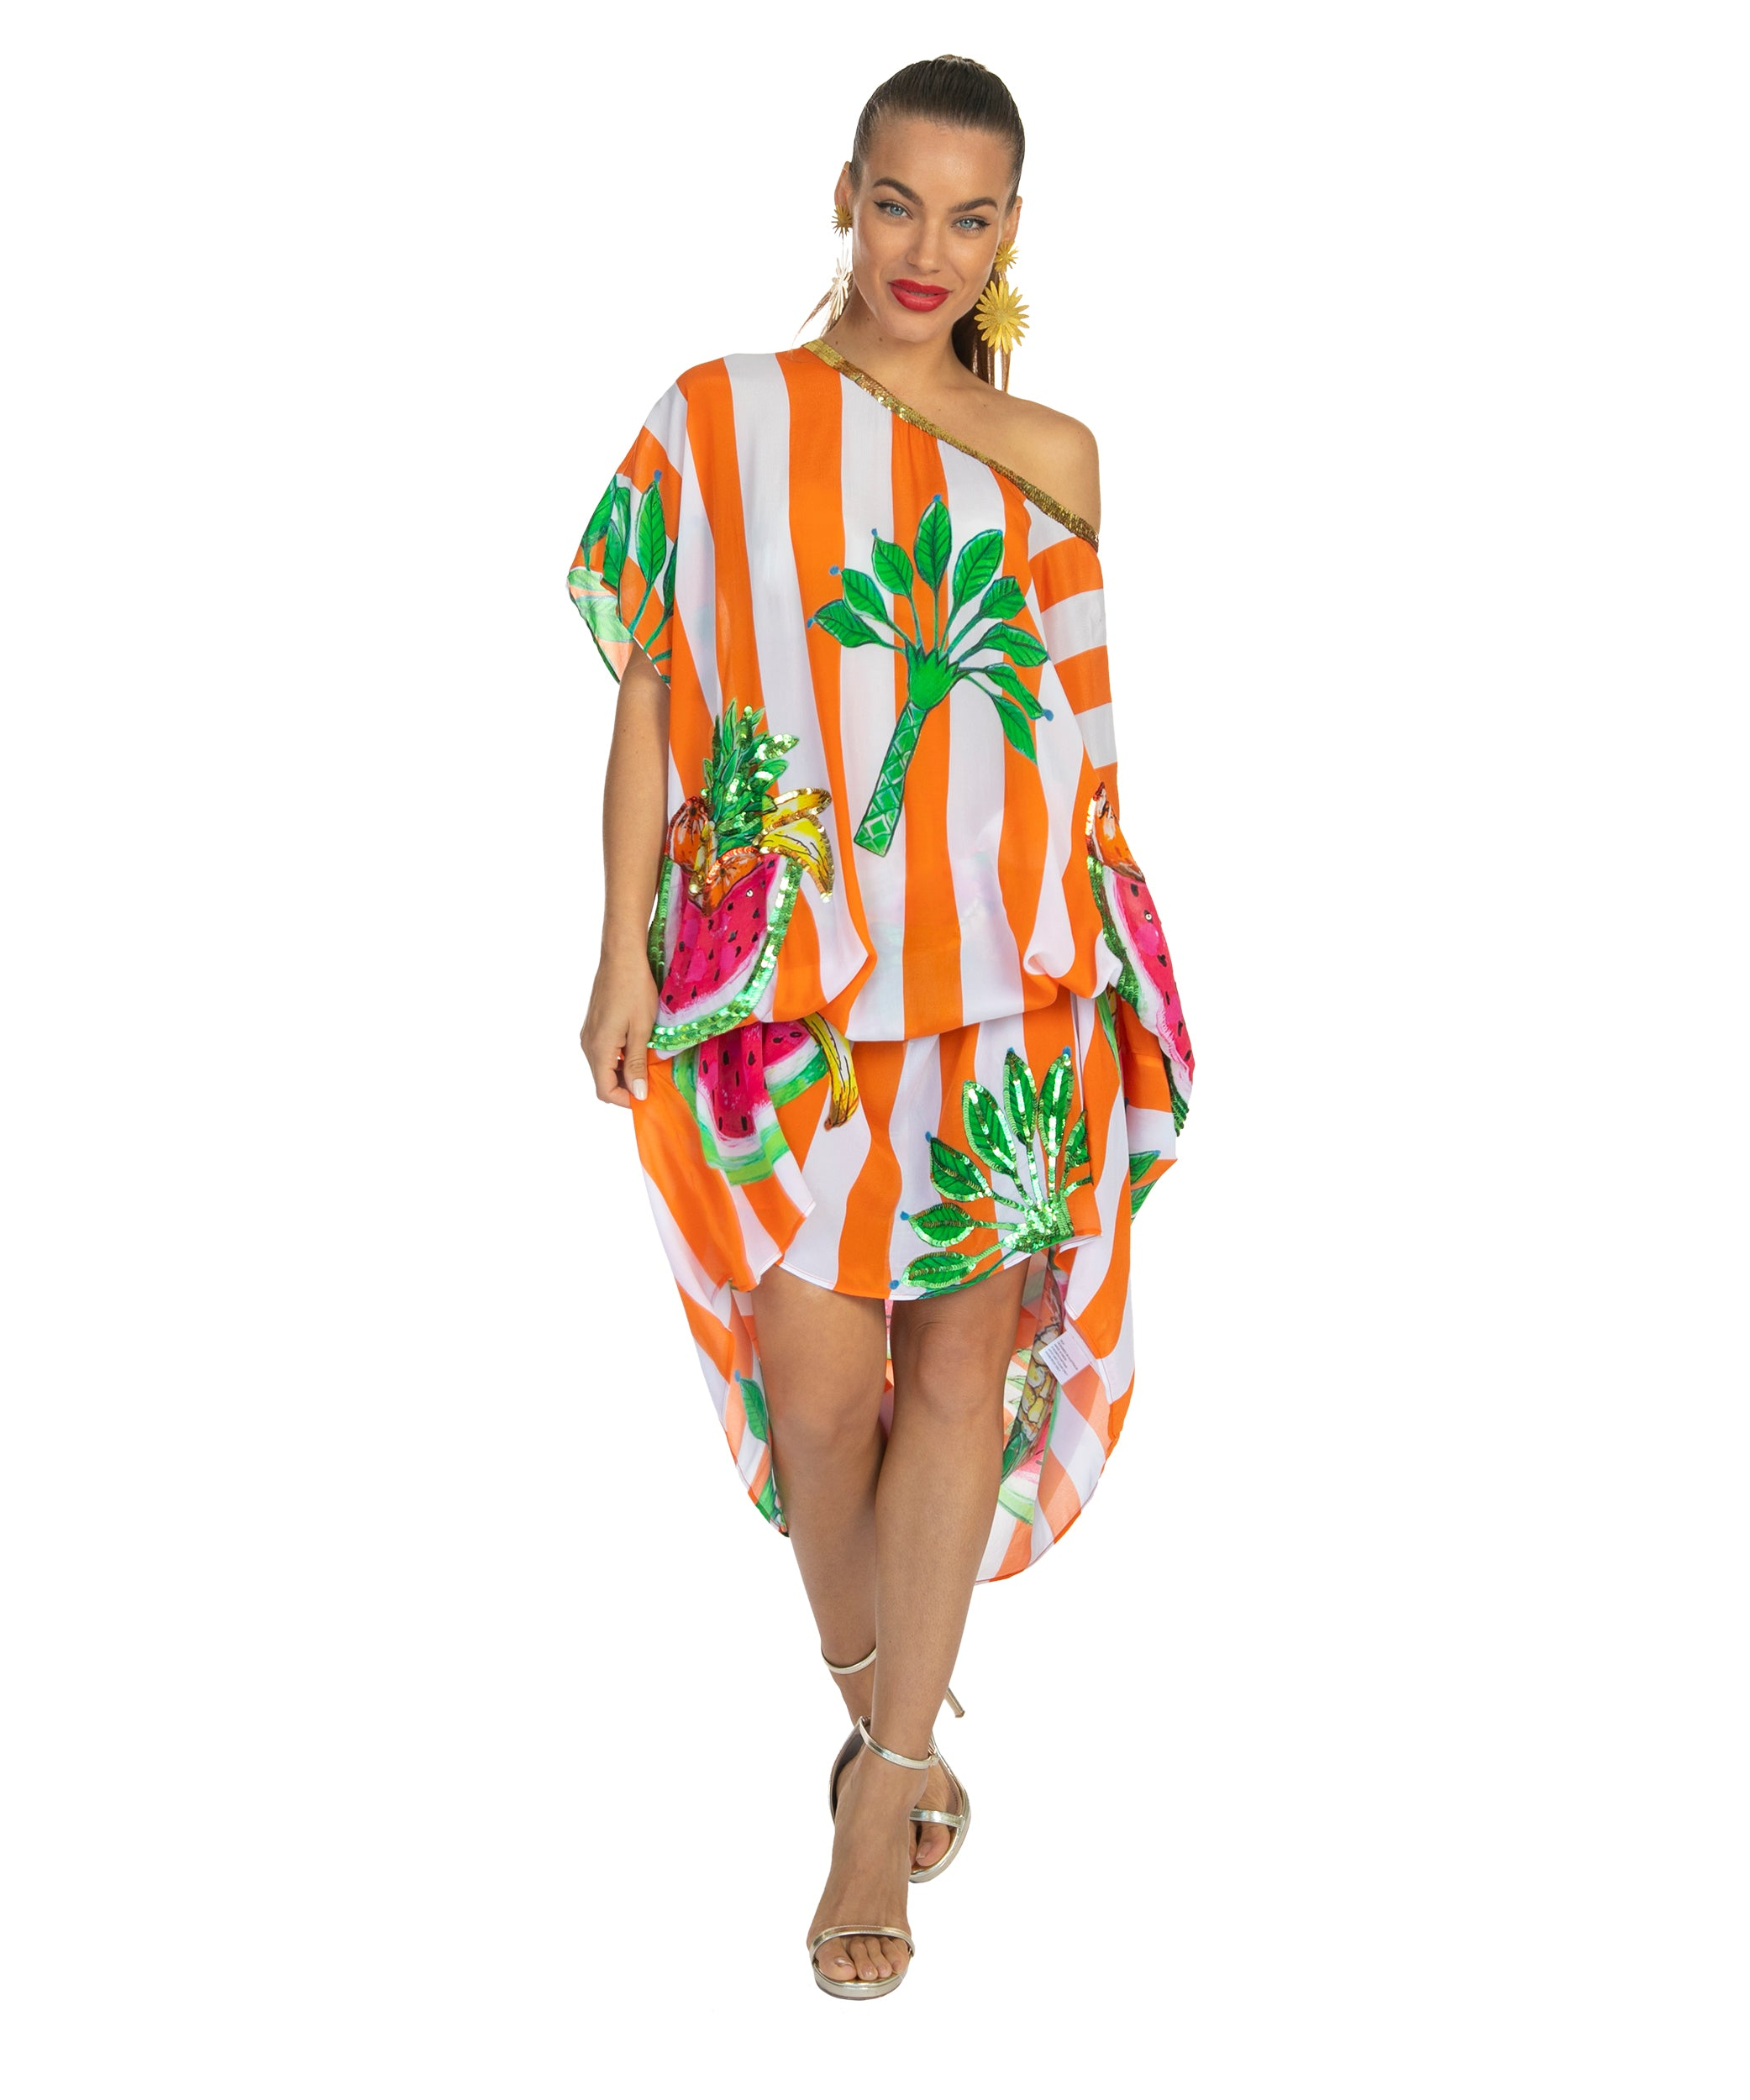 The Carmen Miranda Kaftan by Bonita Collective